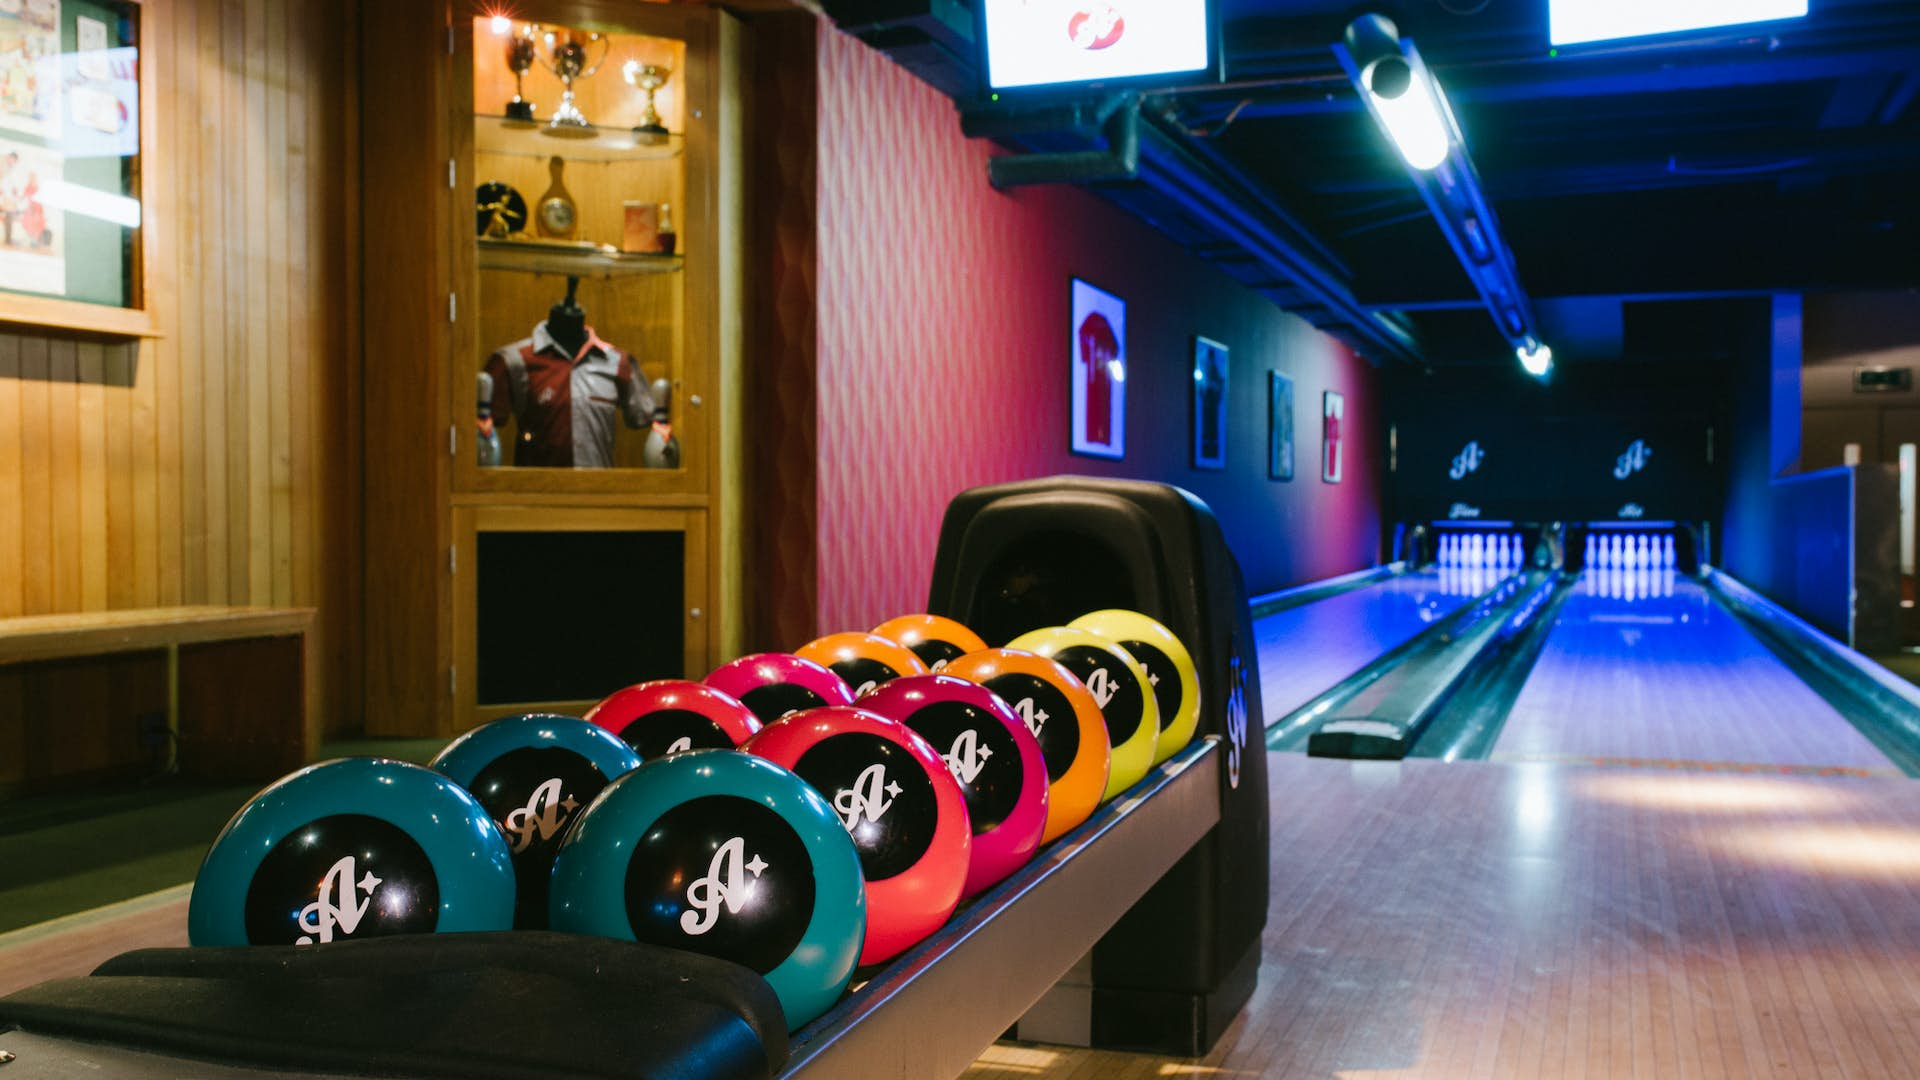 d7dd91df8077 Hire Space - Venue hire The Club House at All Star Lanes - Holborn ...